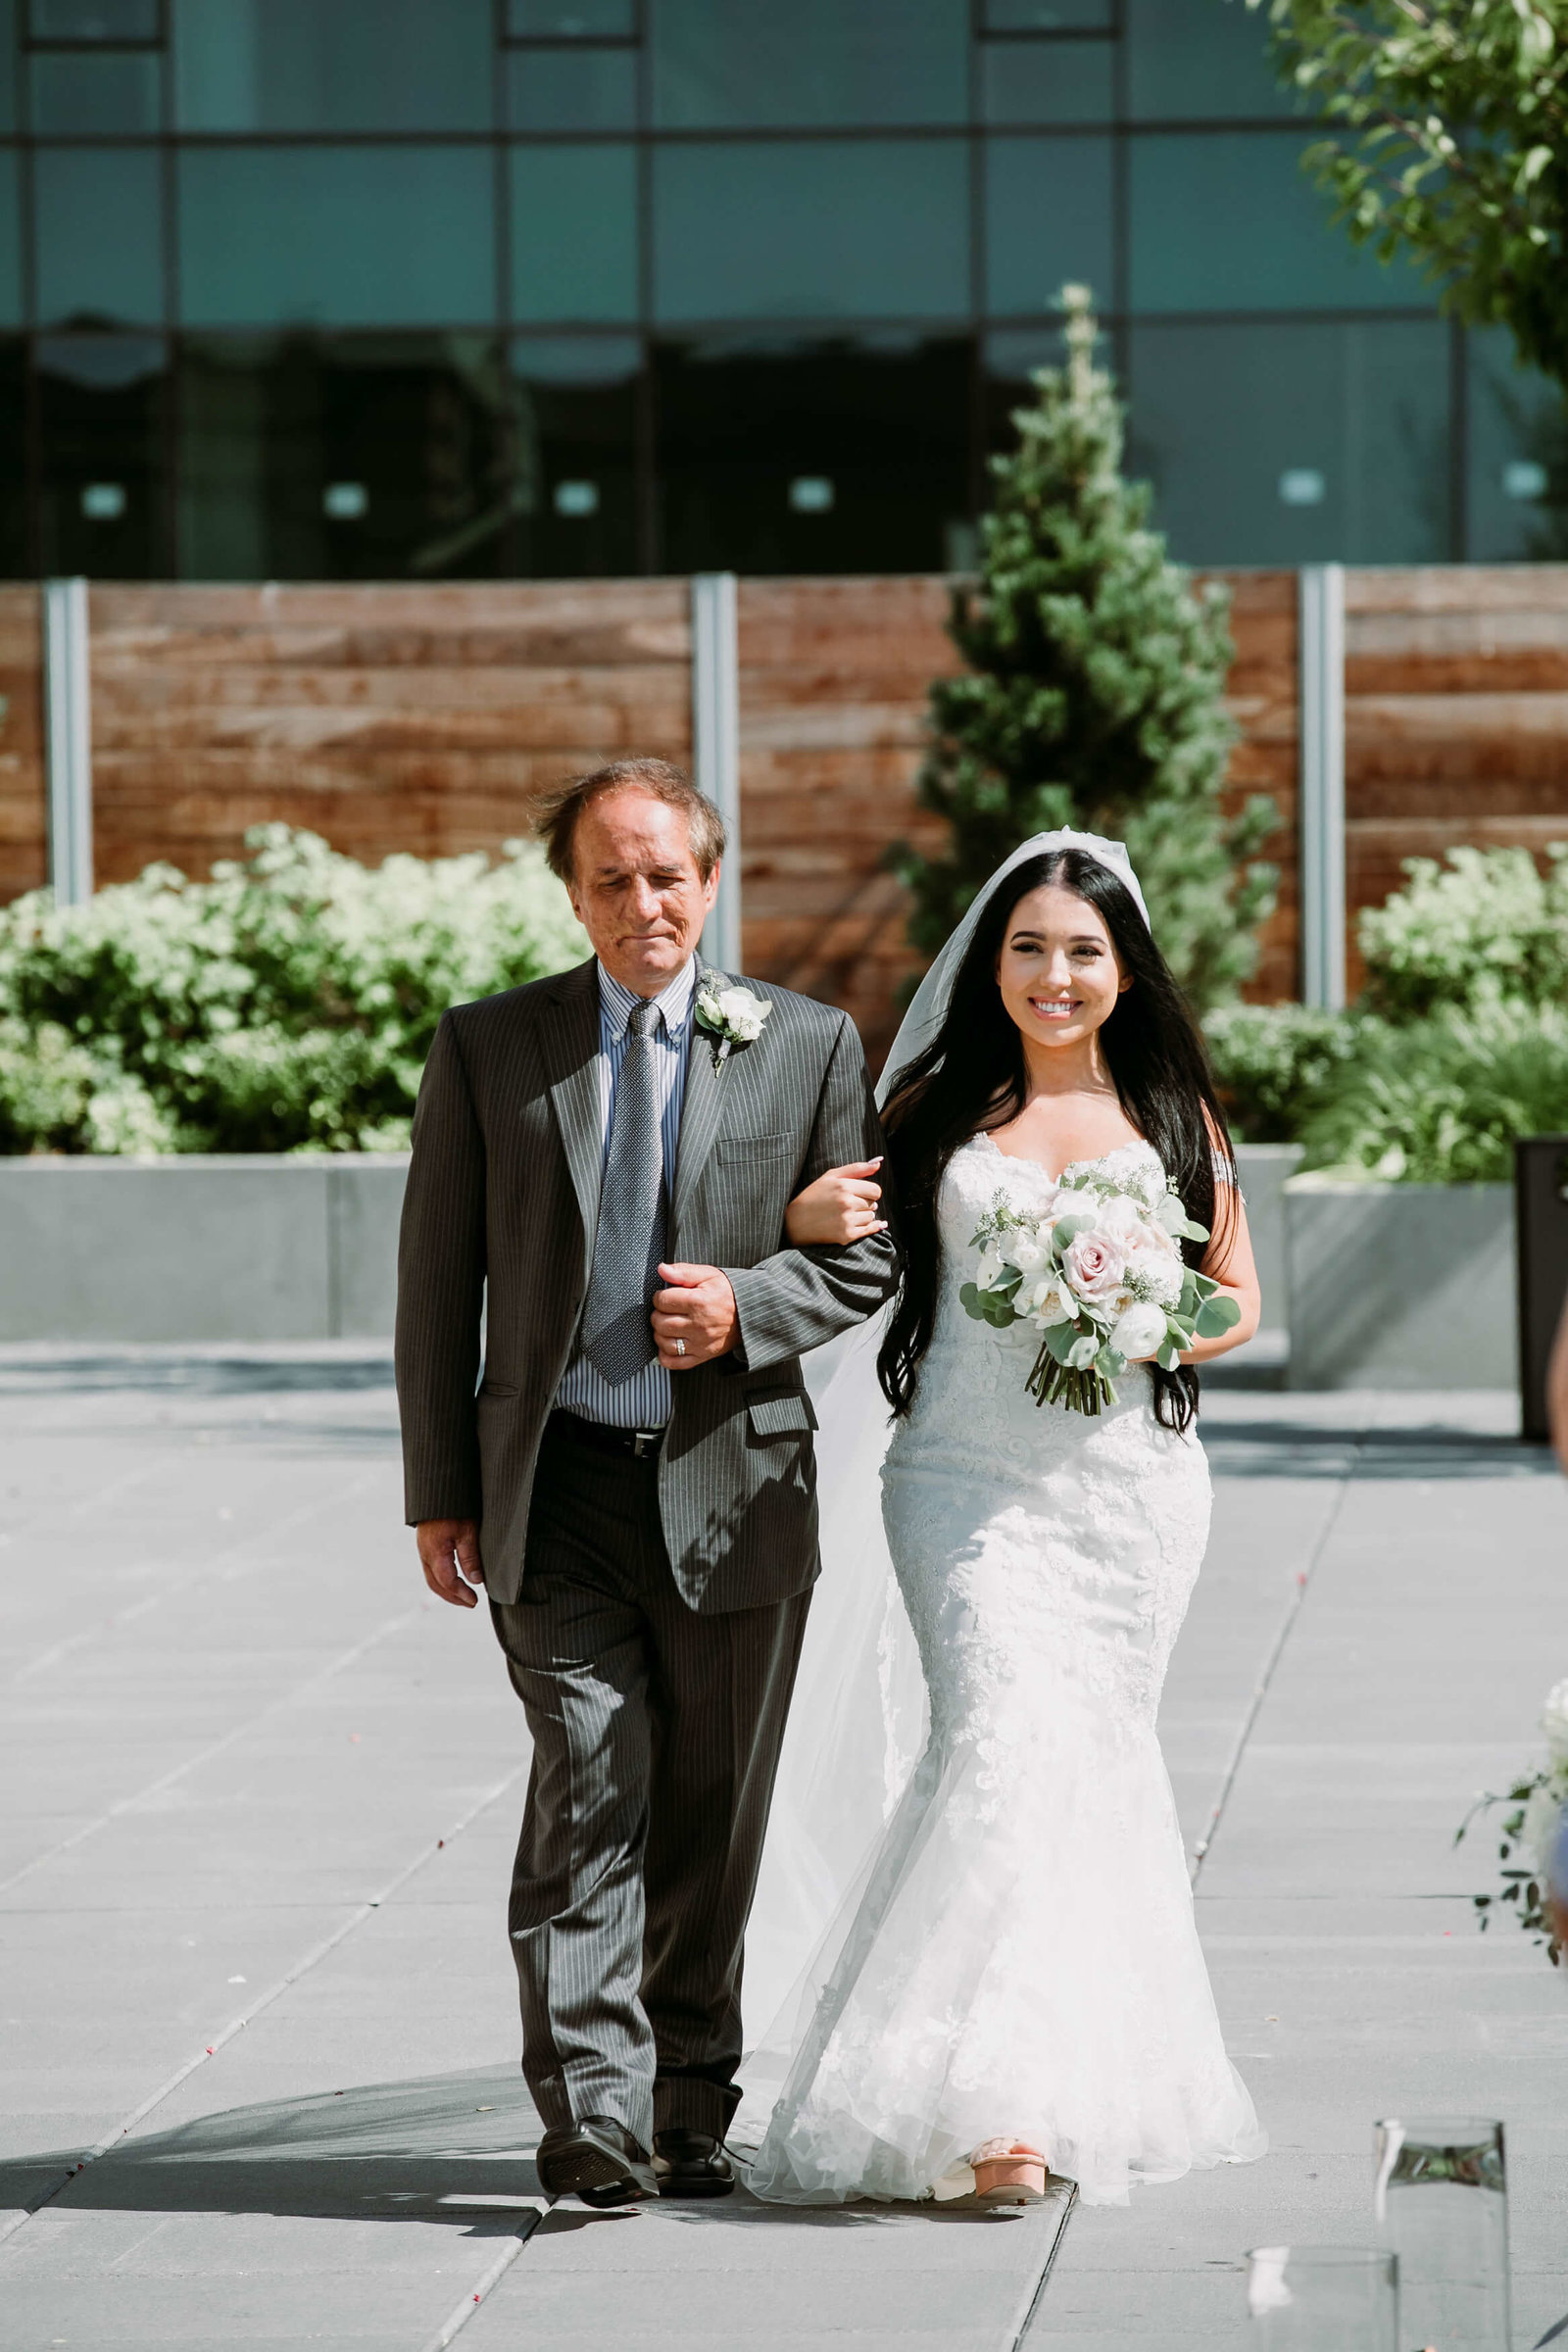 Bianca-Andriy-The-Hyatt-on-lake-washington_wedding-photos-Aug5_378